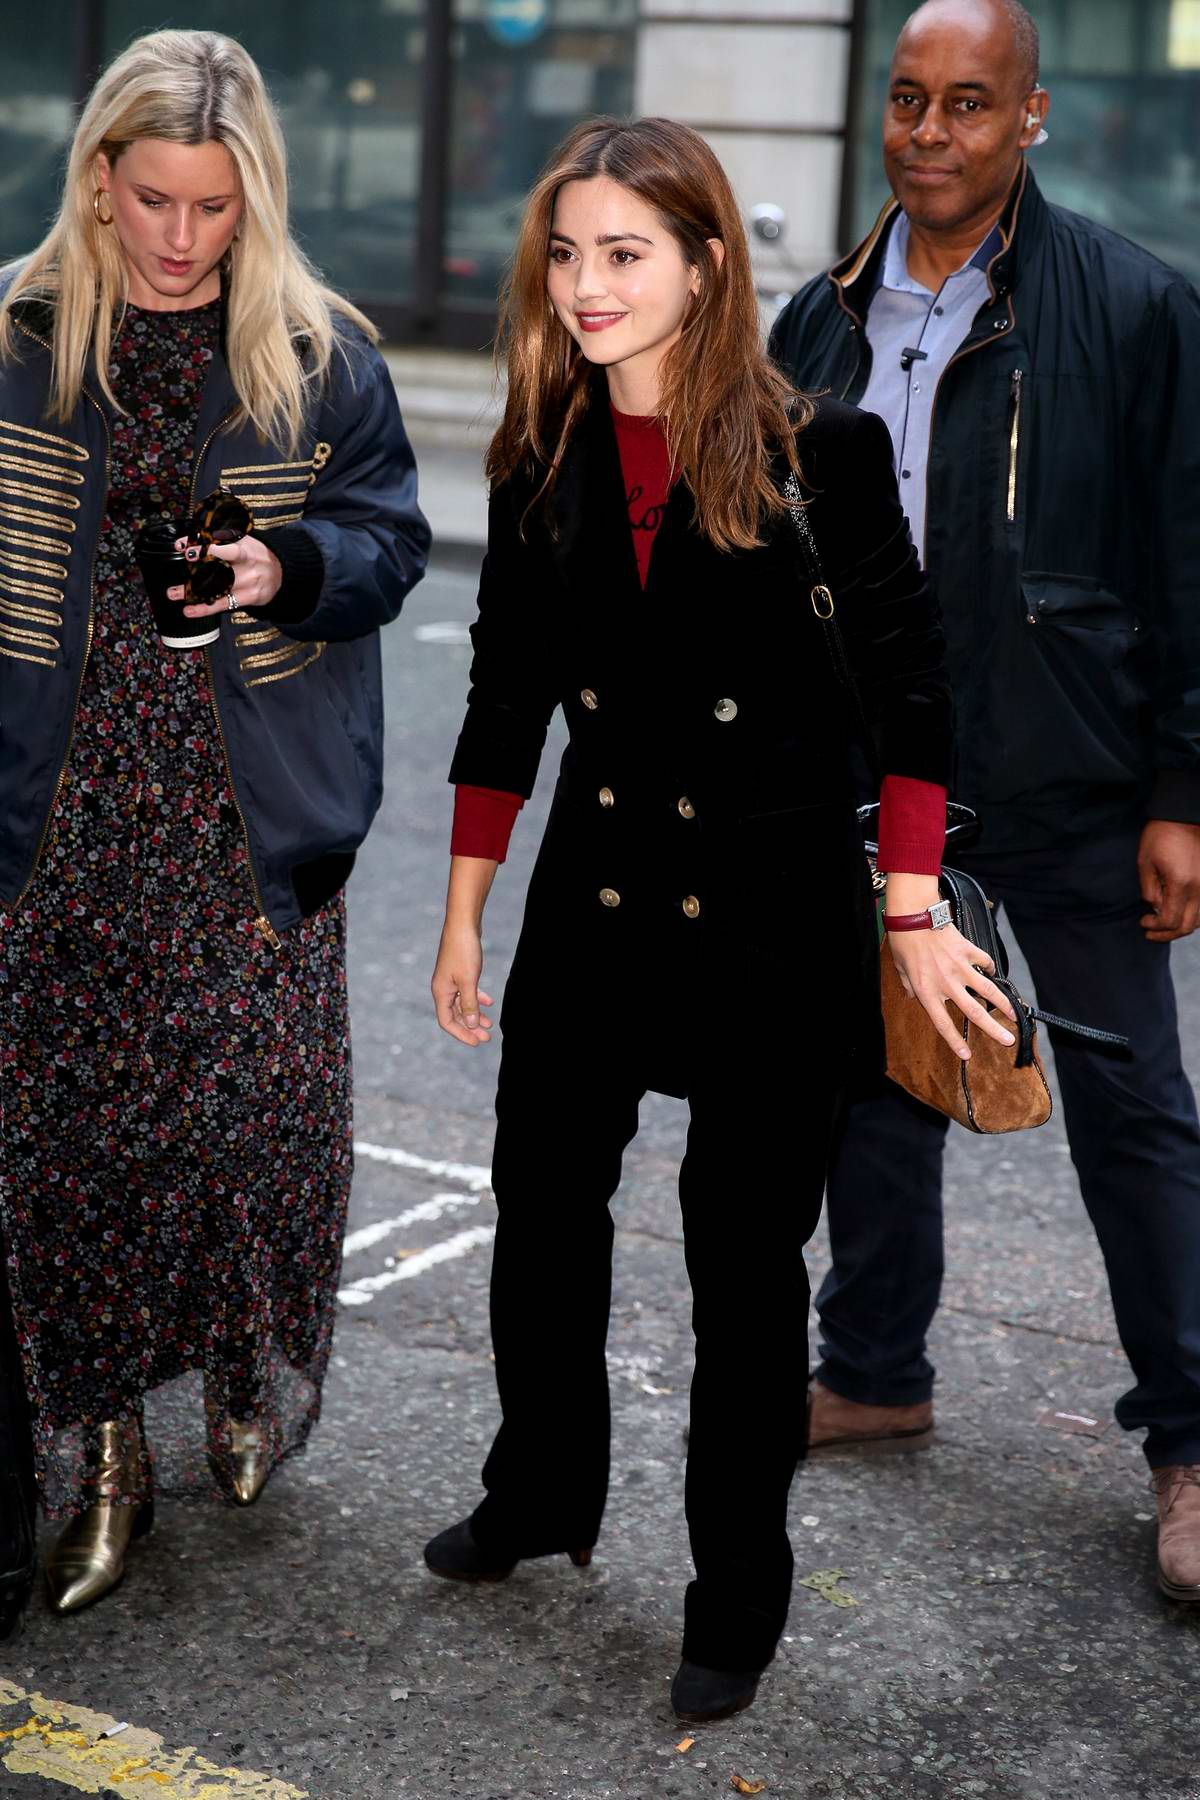 Jenna Coleman arrives to promote her new TV show 'The Cry' at BBC Radio 2 studios in London, UK